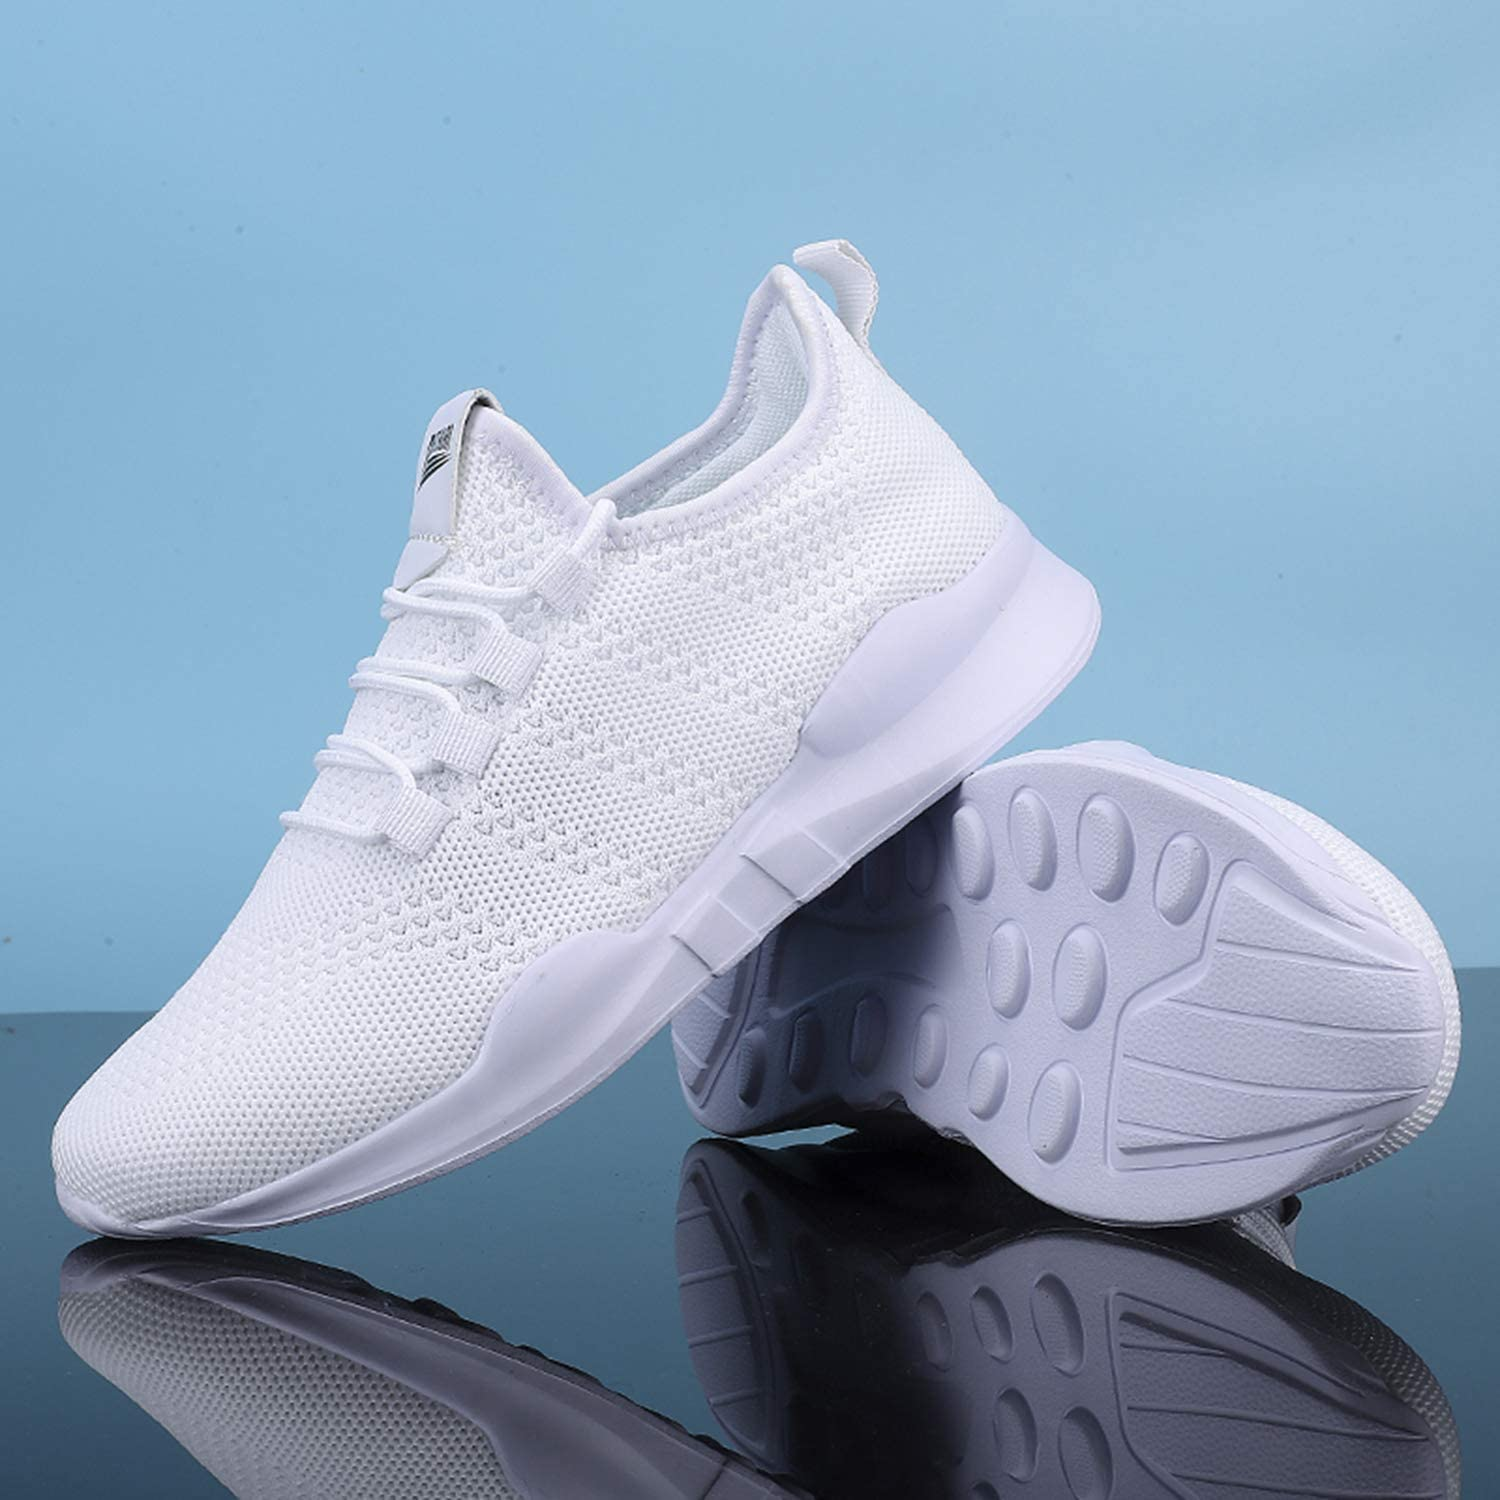 Femme Chaussures de Running pour Course Sports Fitness Respirant Mesh Gym Outdoor Trail Jogging Walking Tennis Baskets athl/étique Sneakers